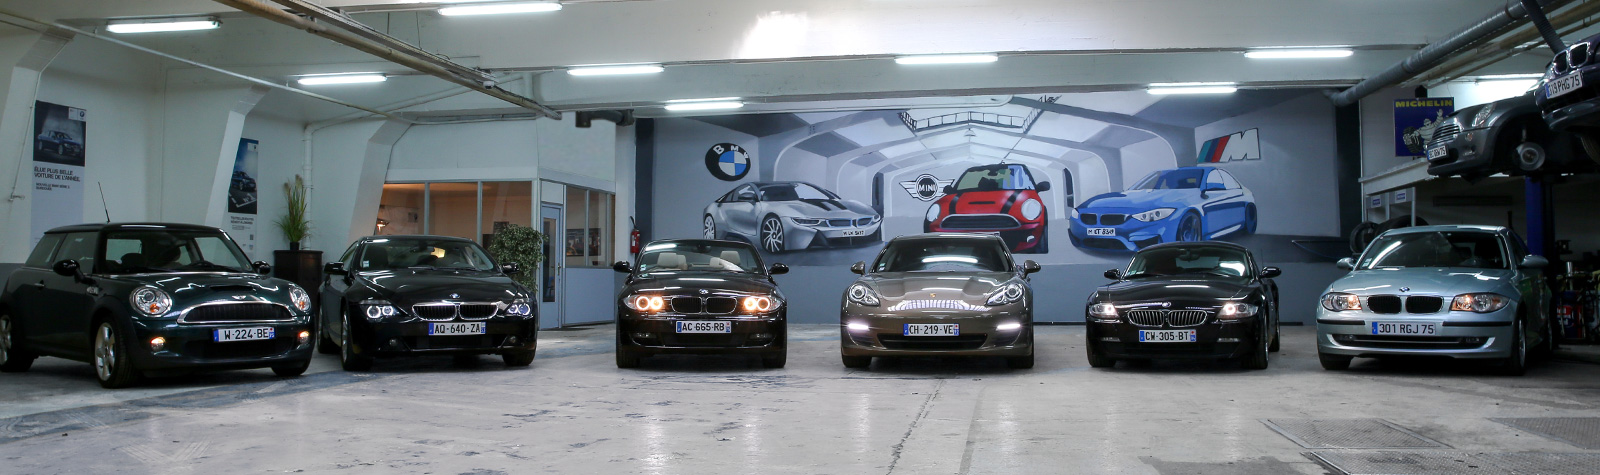 Garage bmw paris garage saint antoine nation paris 11 for Bmw nasa garage juillet niort